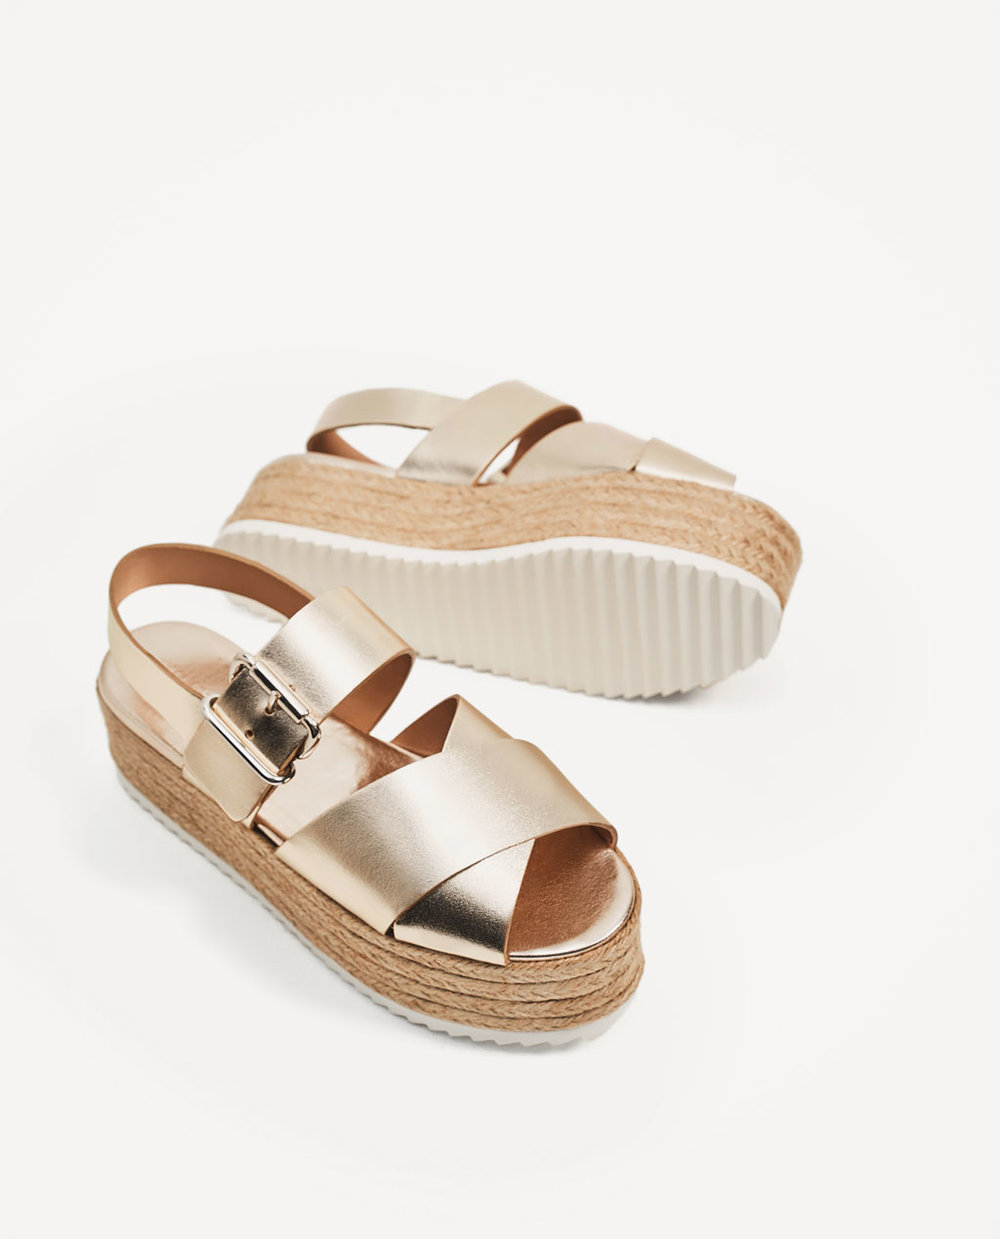 Leather Wedges with Jute Platform, Zara, £59.99